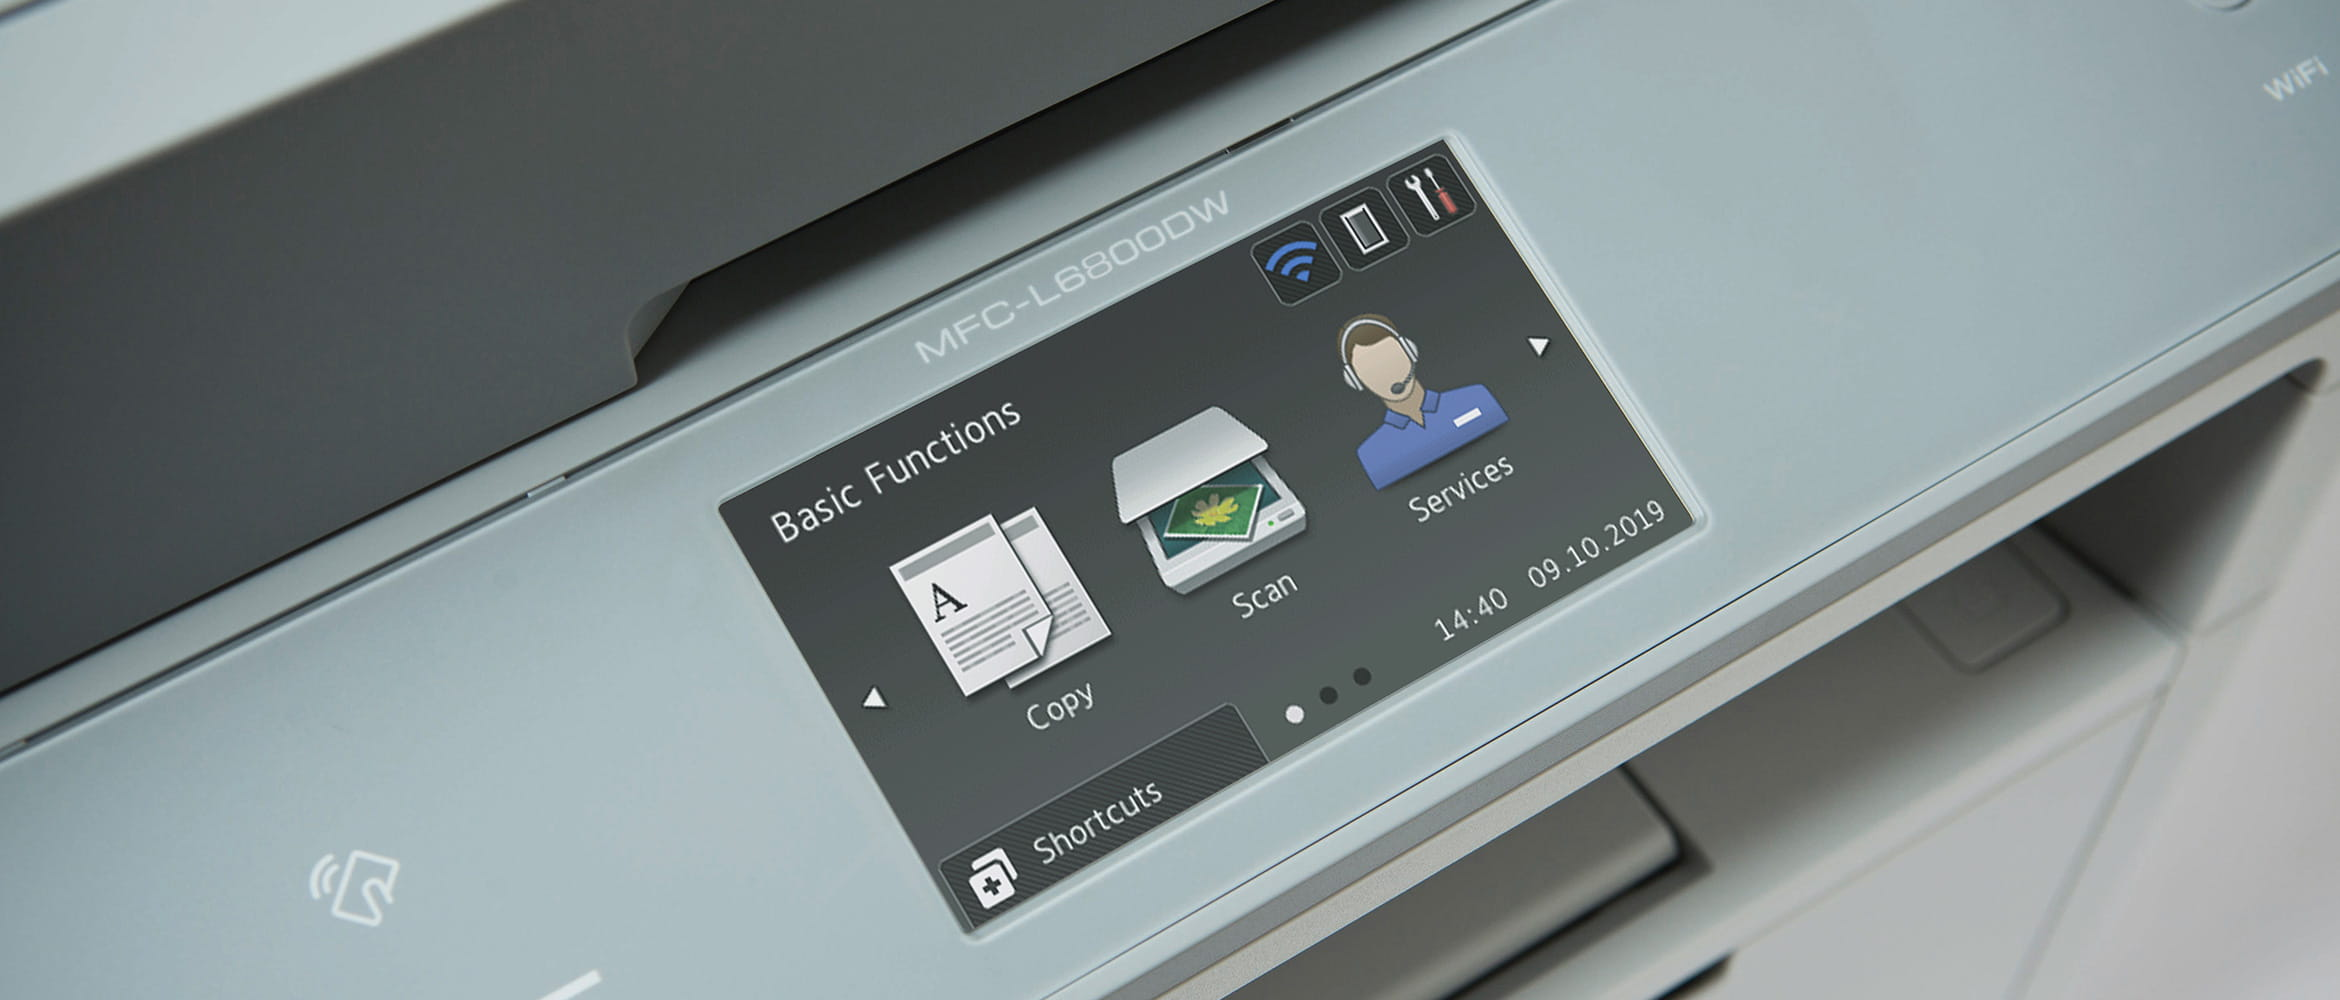 Three icons on the touchscreen of MFC-L6800